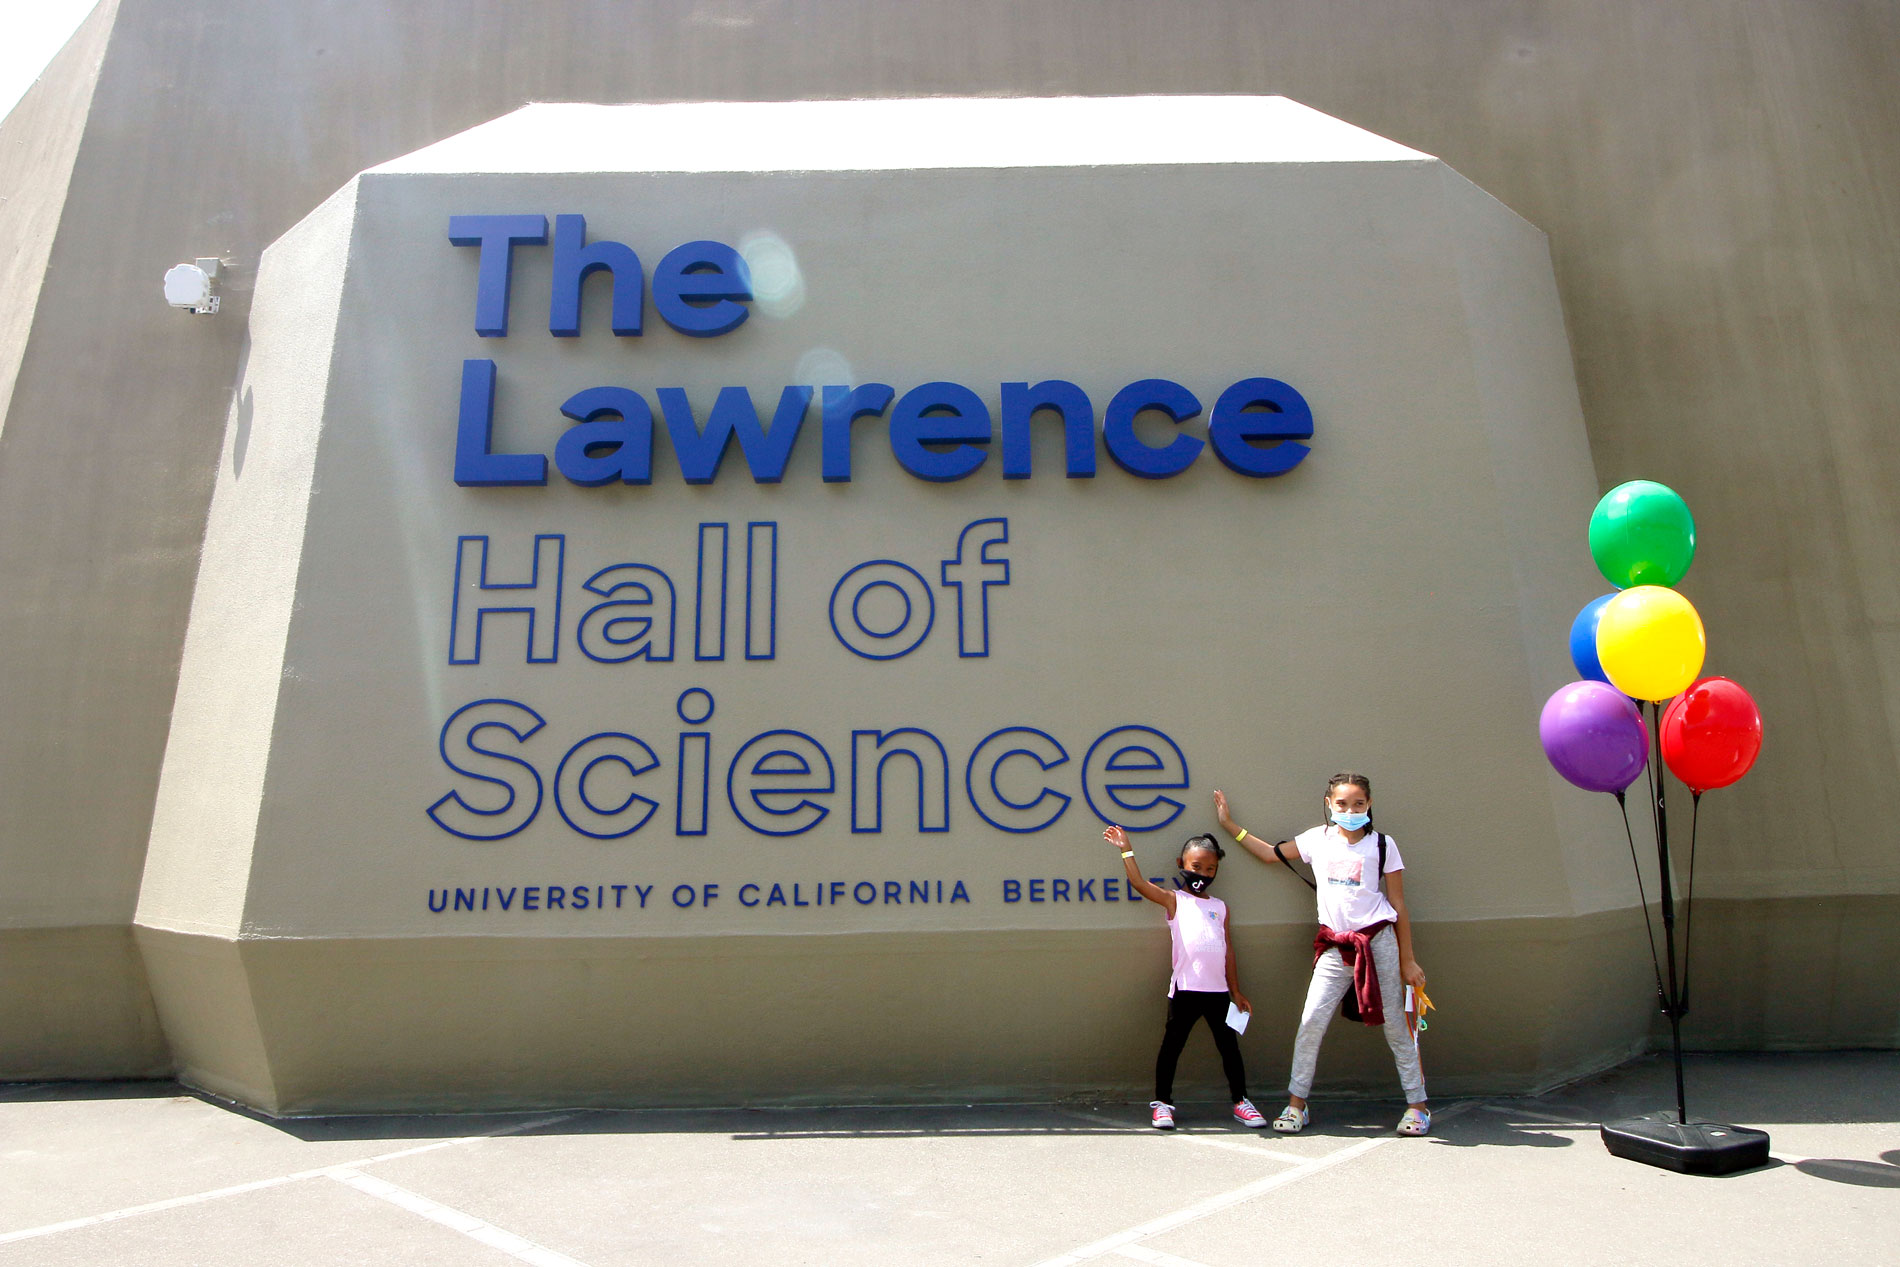 Two children standing at The Lawrence Hall of Science sign on the plaza